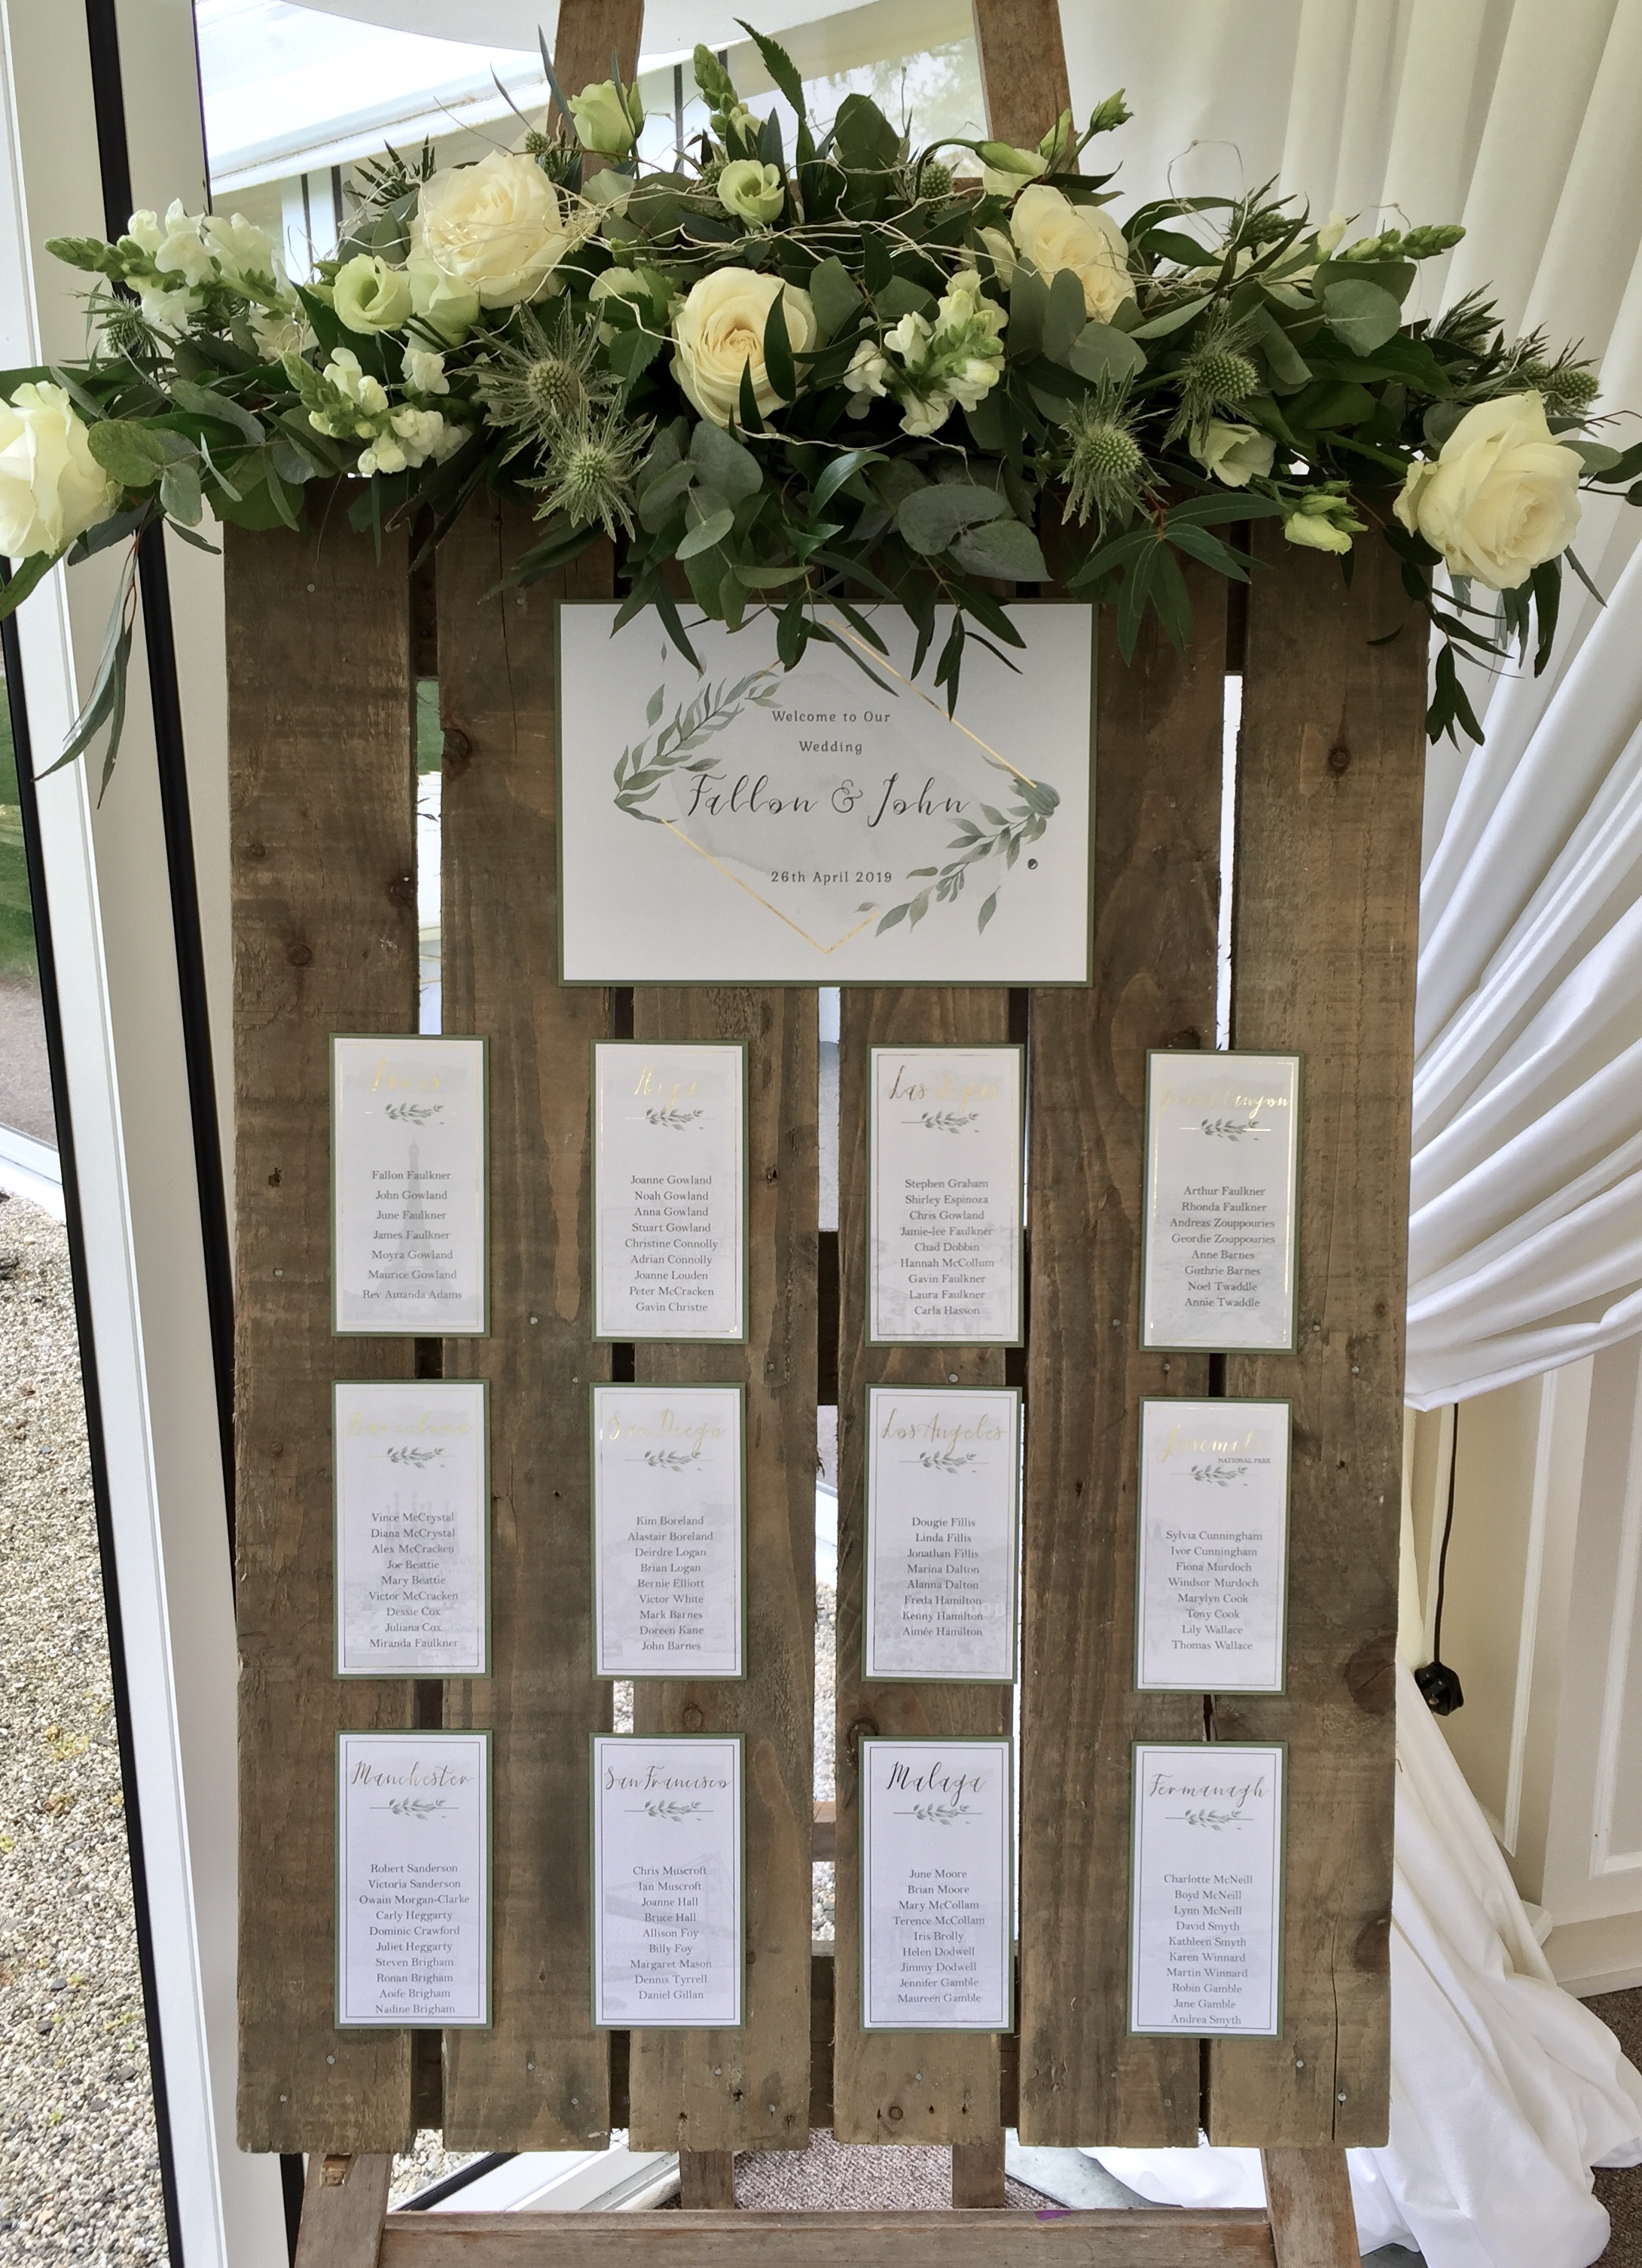 Fallon- Gold and Foliage Wedding Table Plan